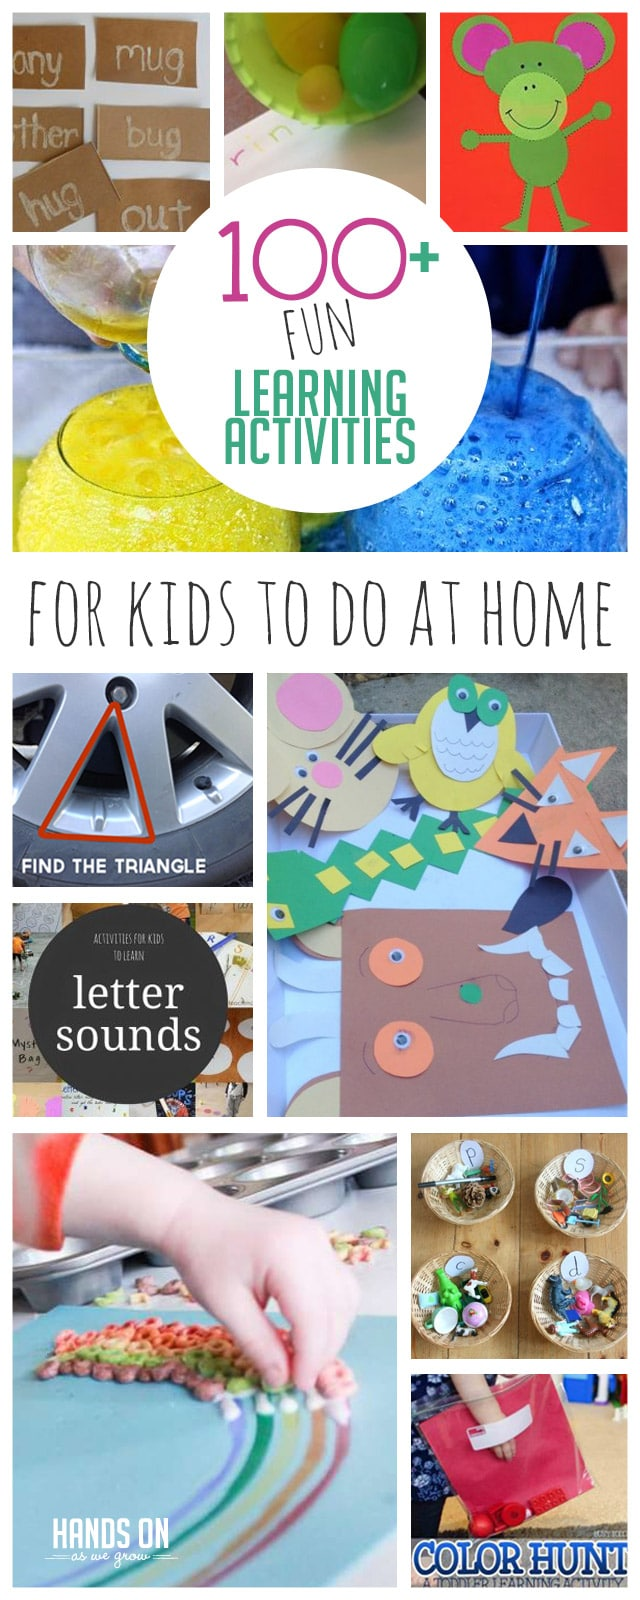 Your kids will love these easy and fun learning activities for kids to do at home!